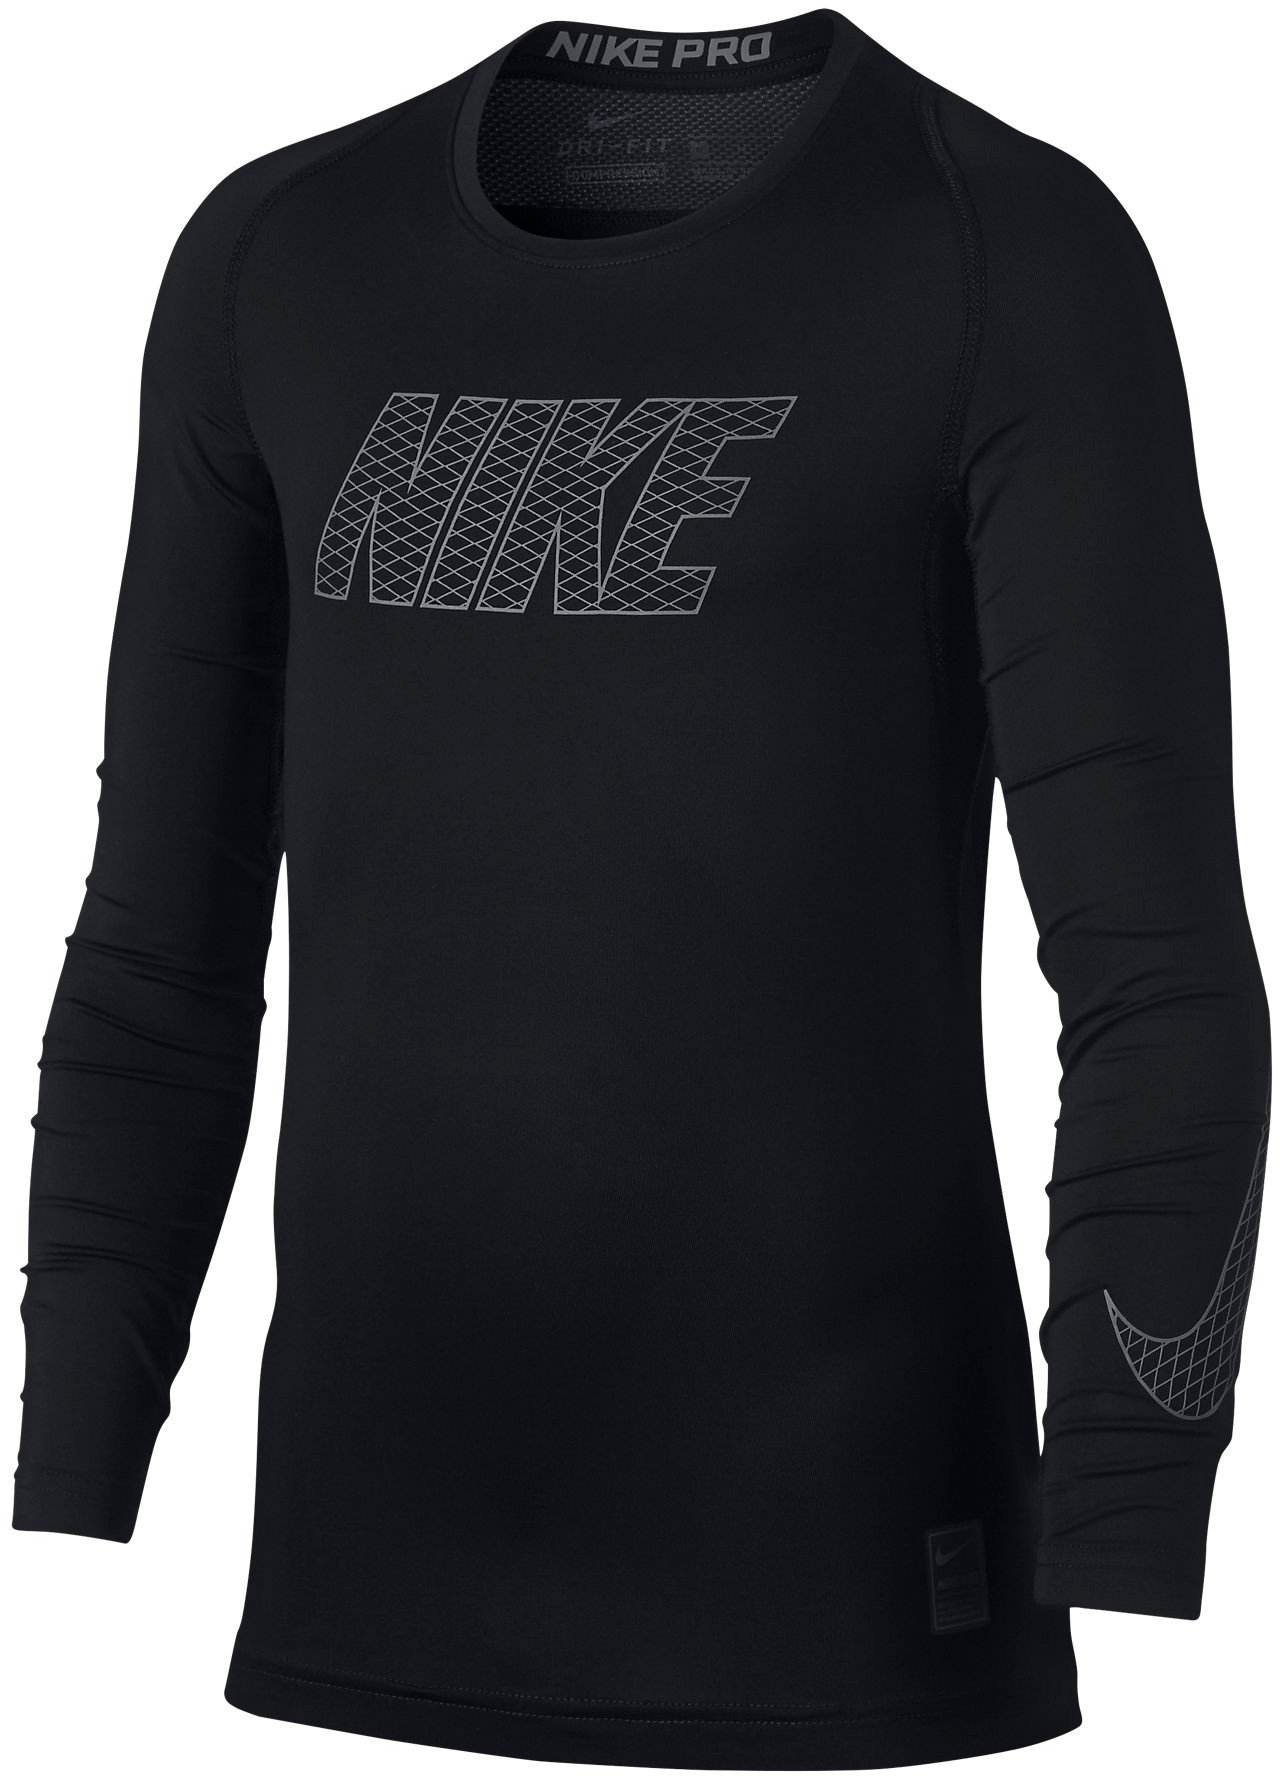 Long-sleeve T-shirt Nike B NP TOP LS COMP